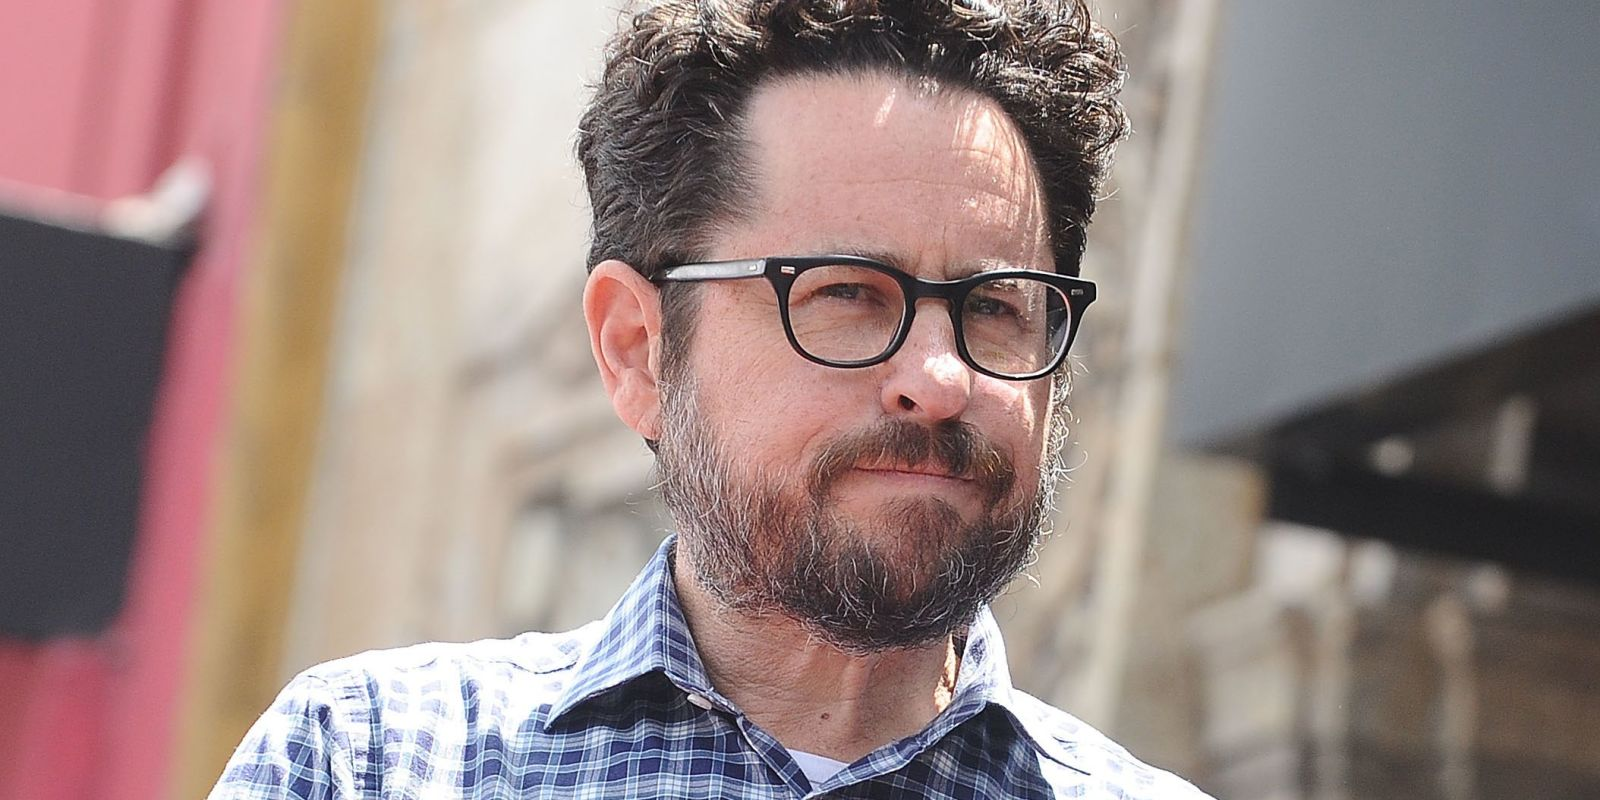 Star Wars' JJ Abrams says he's kind of sick of Hollywood reboots